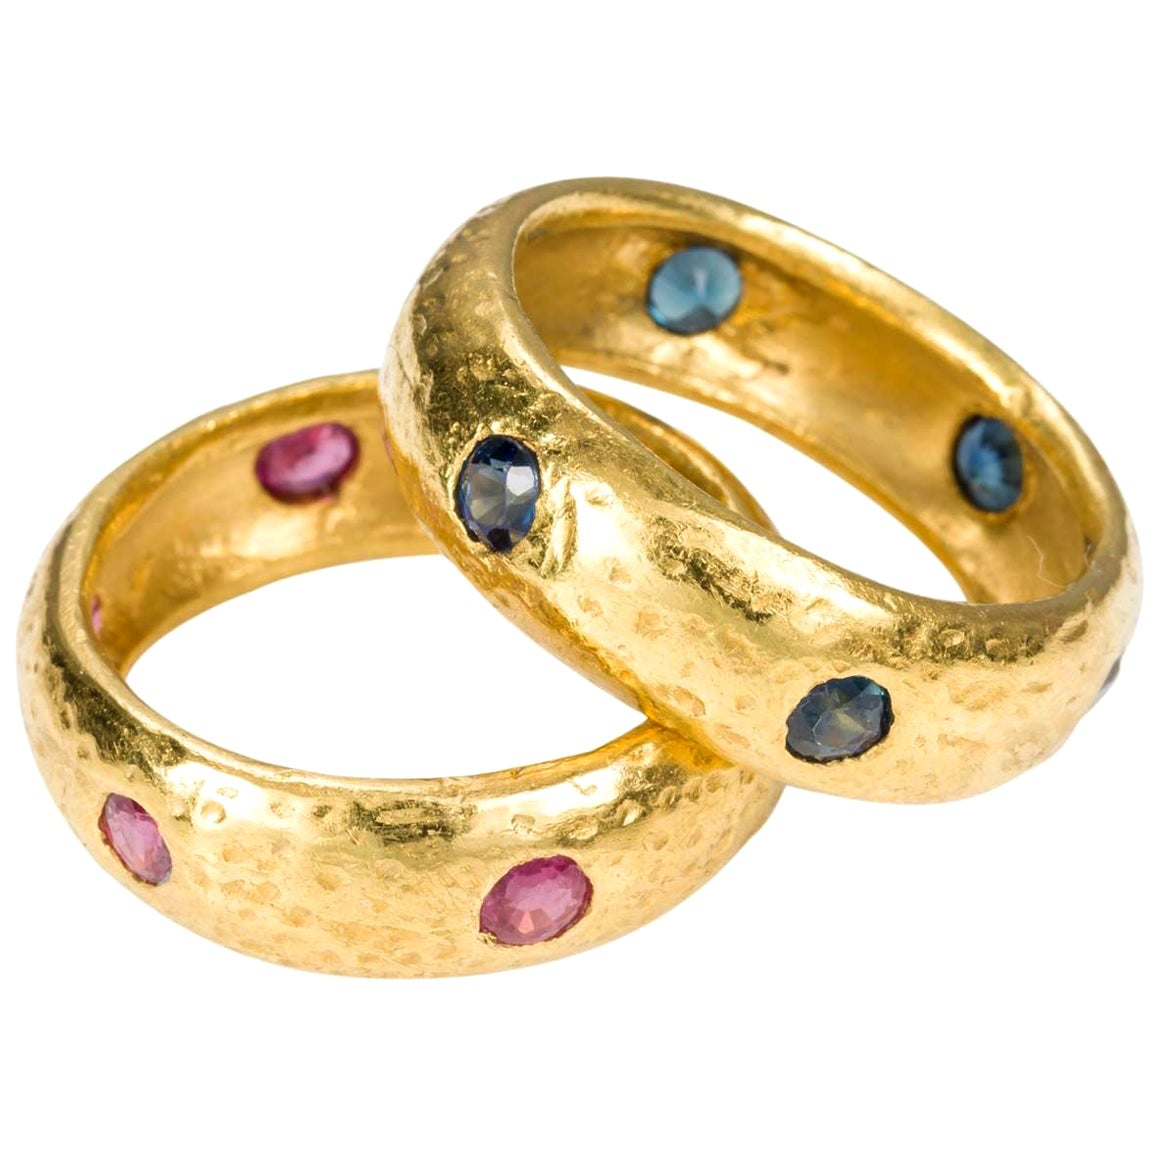 22 Karat Yellow Gold Sapphire and Ruby Hammer Band Rings